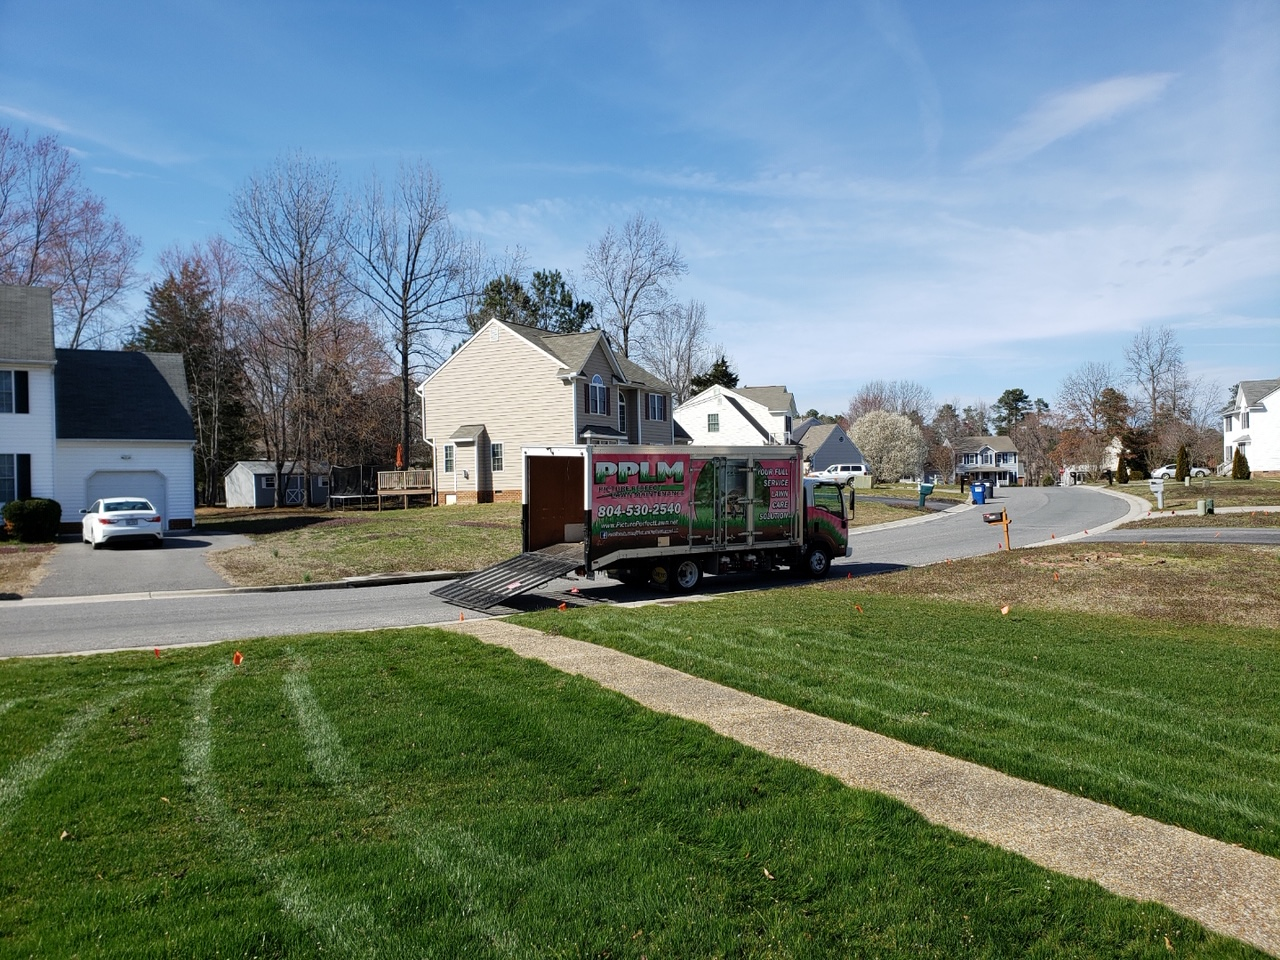 Getting a Lawn Care Estimate   The PPLM Sales Process